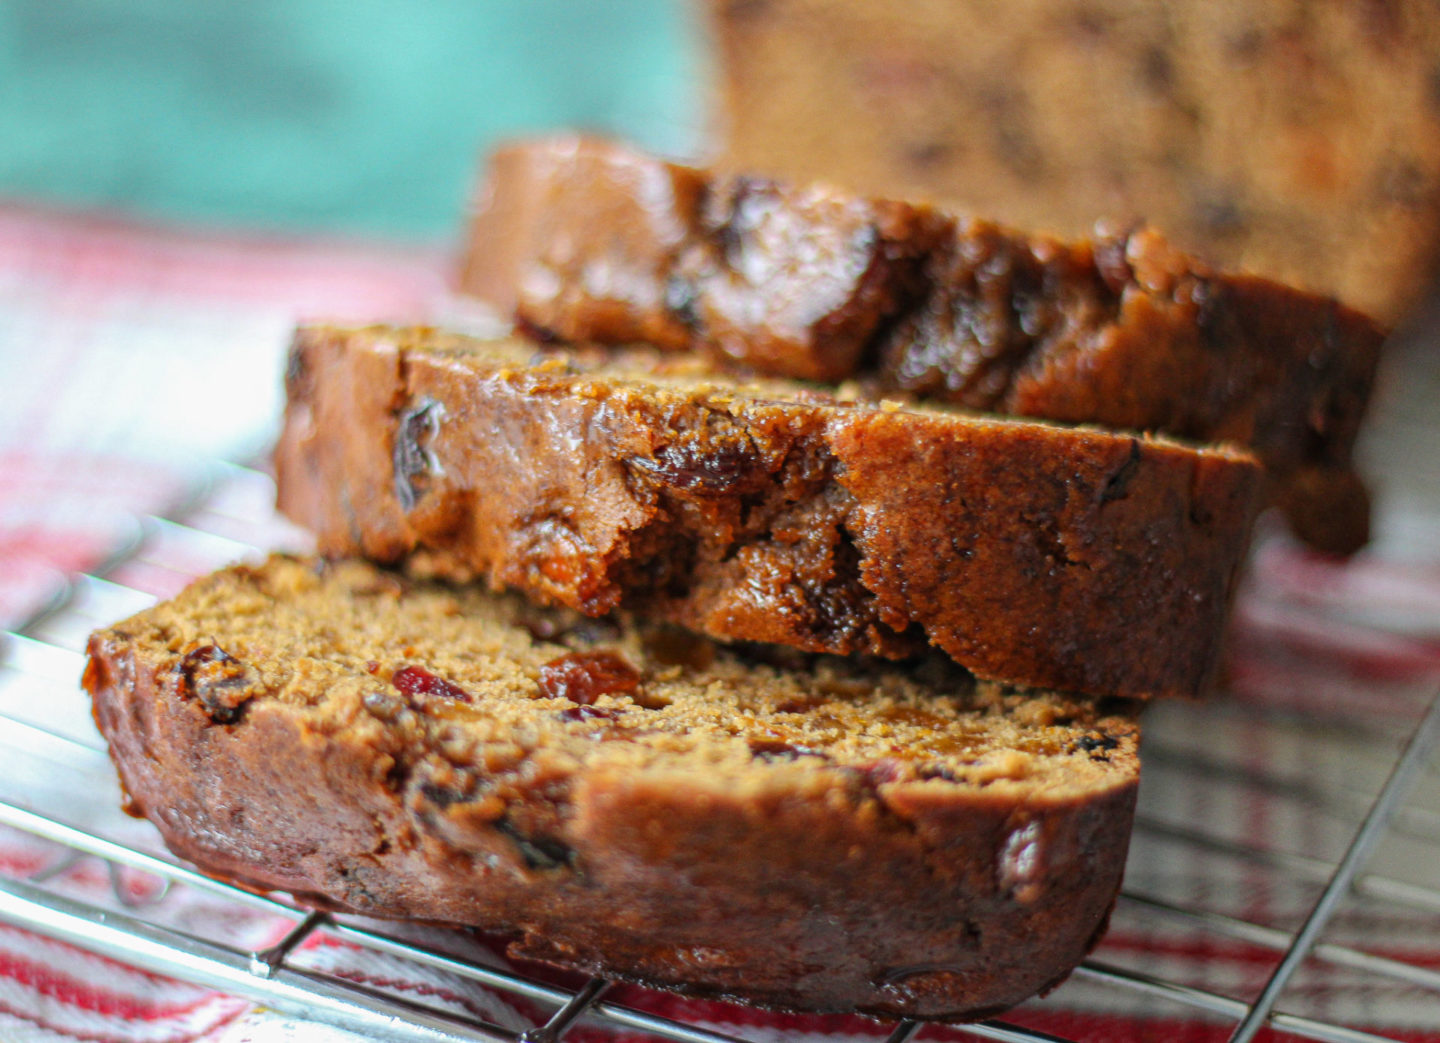 three slices of Bara Brith stacked on top of each other on wire rack